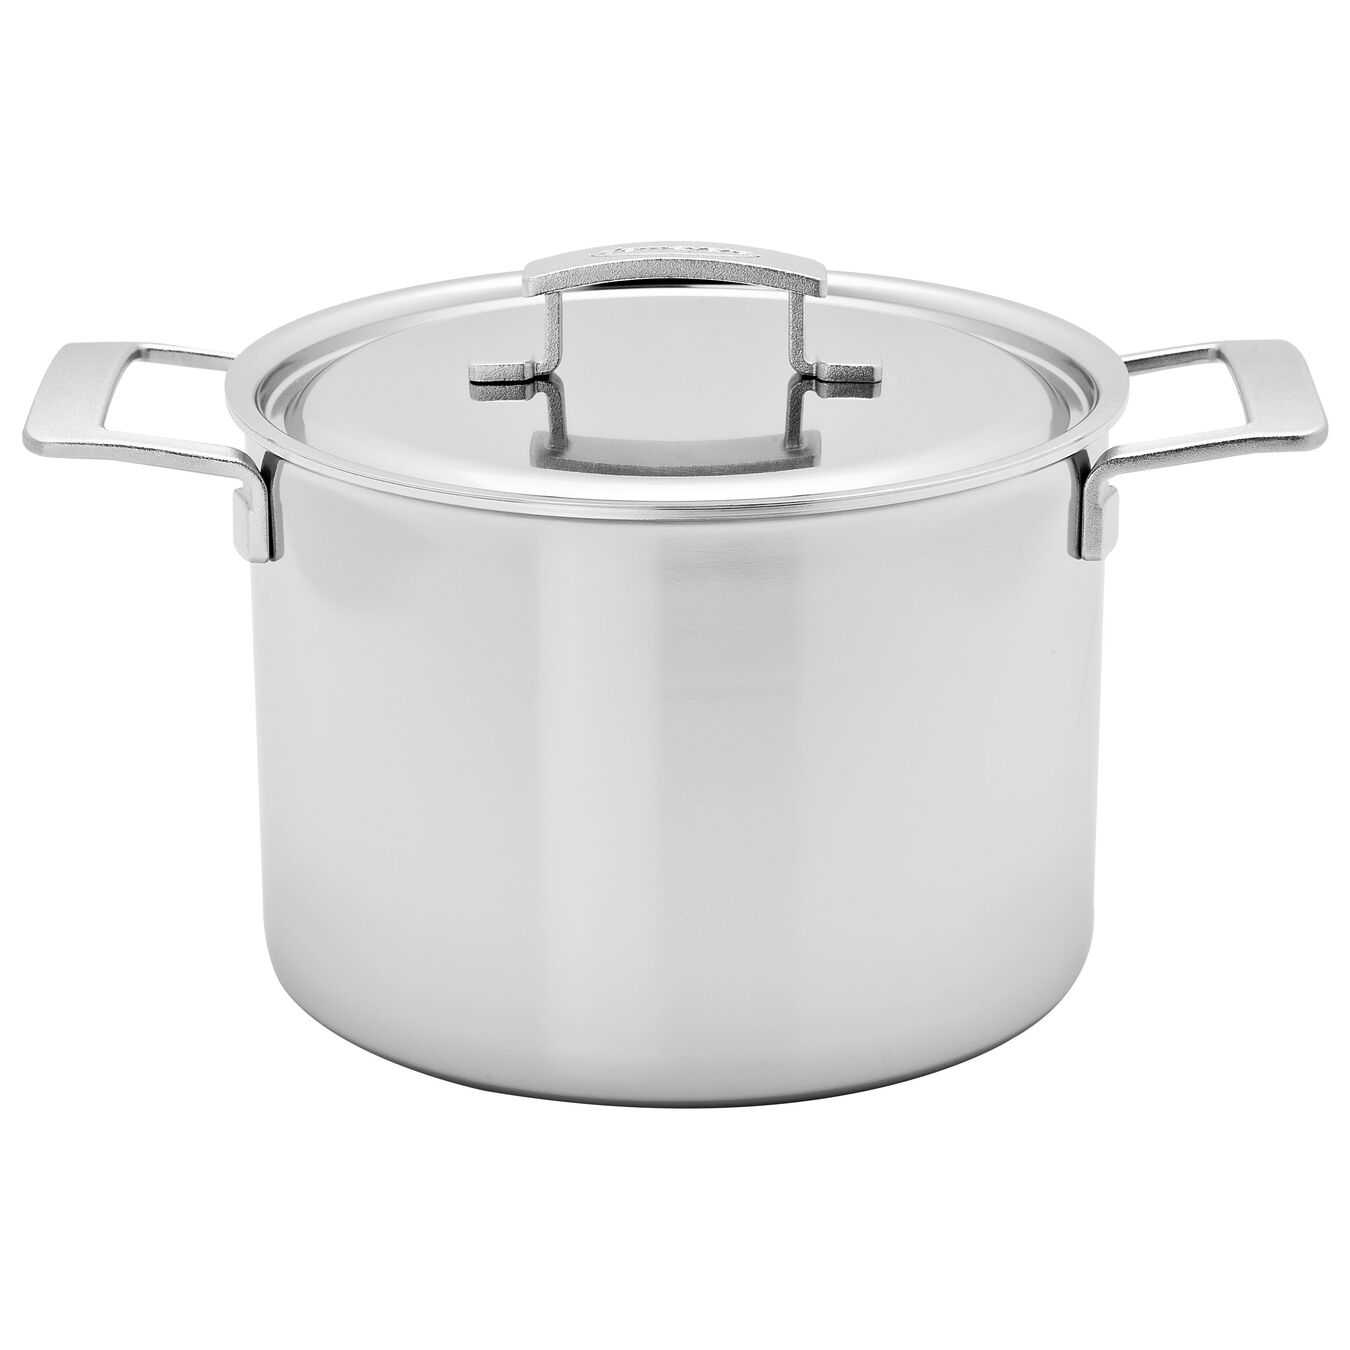 11.5 l 18/10 Stainless Steel Tall Stock Pot With Lid,,large 1